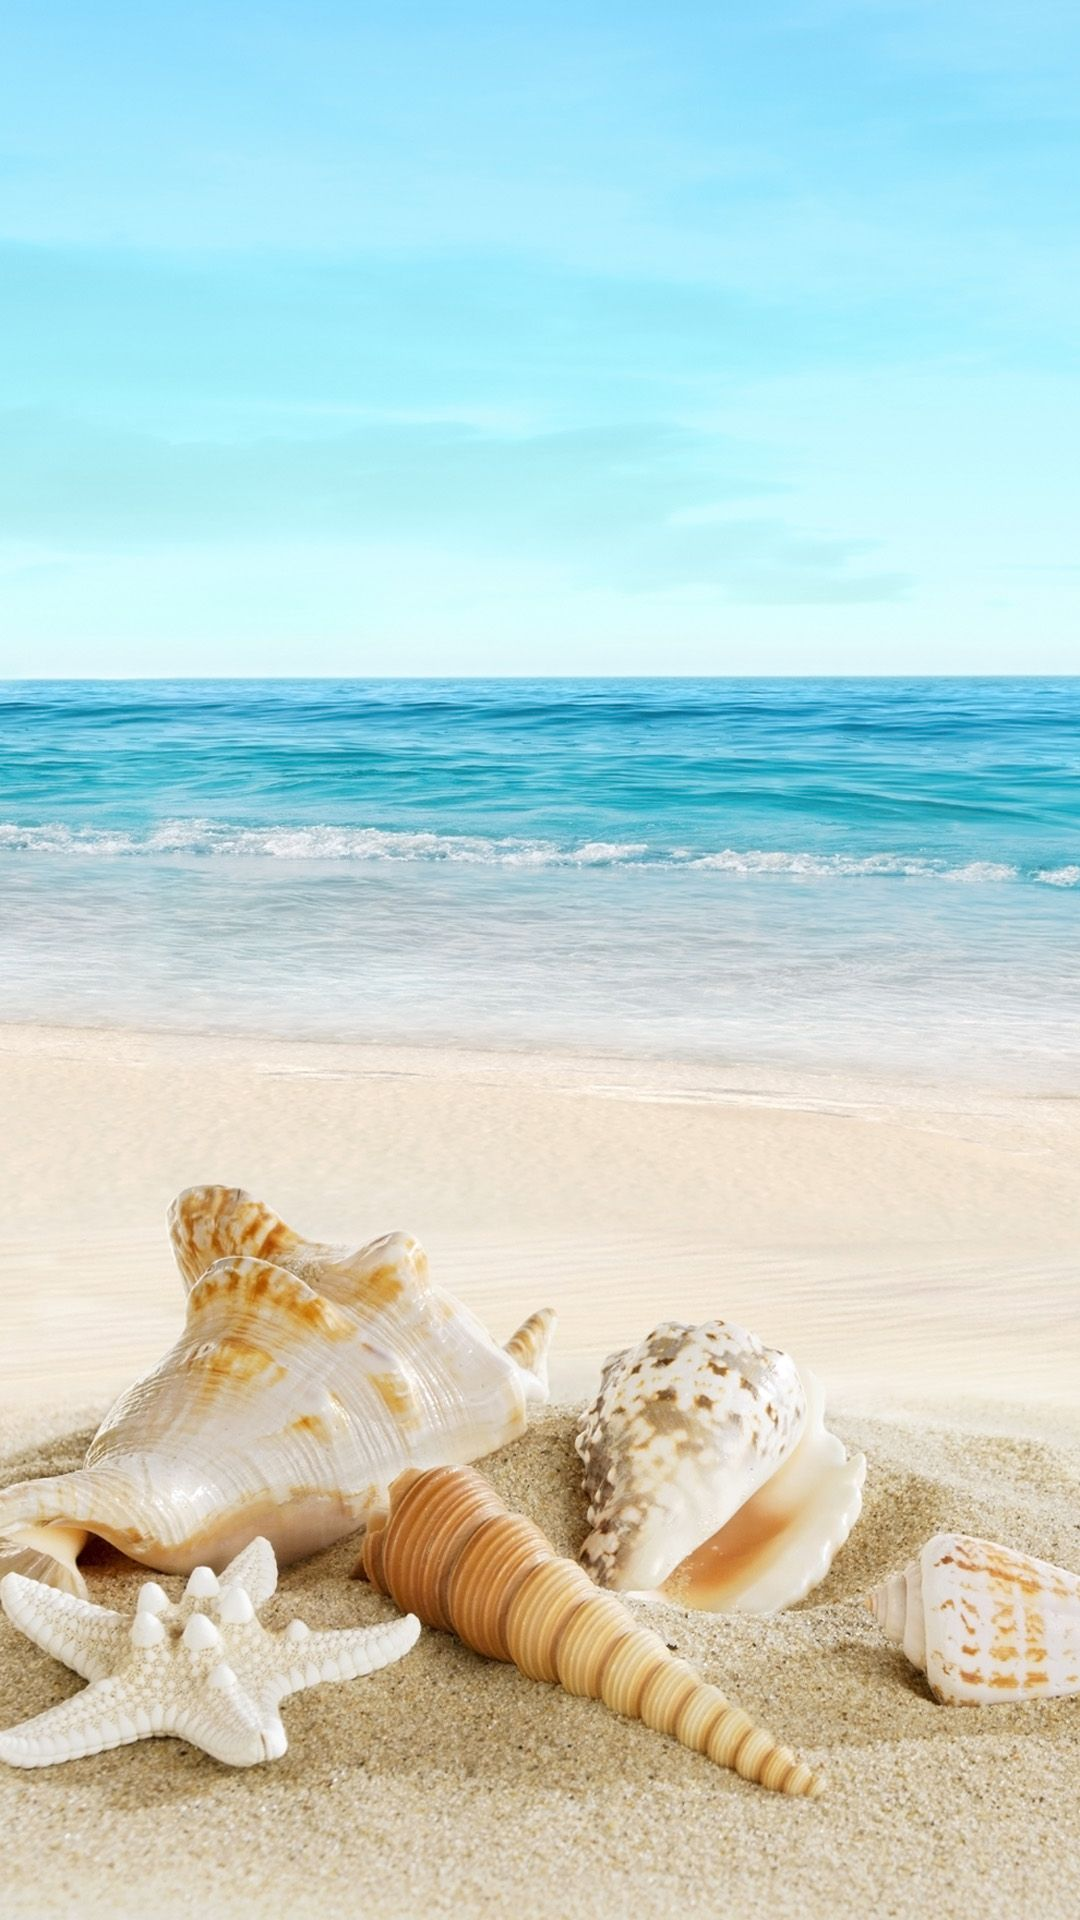 22 Awesome Beach iPhone wallpapers